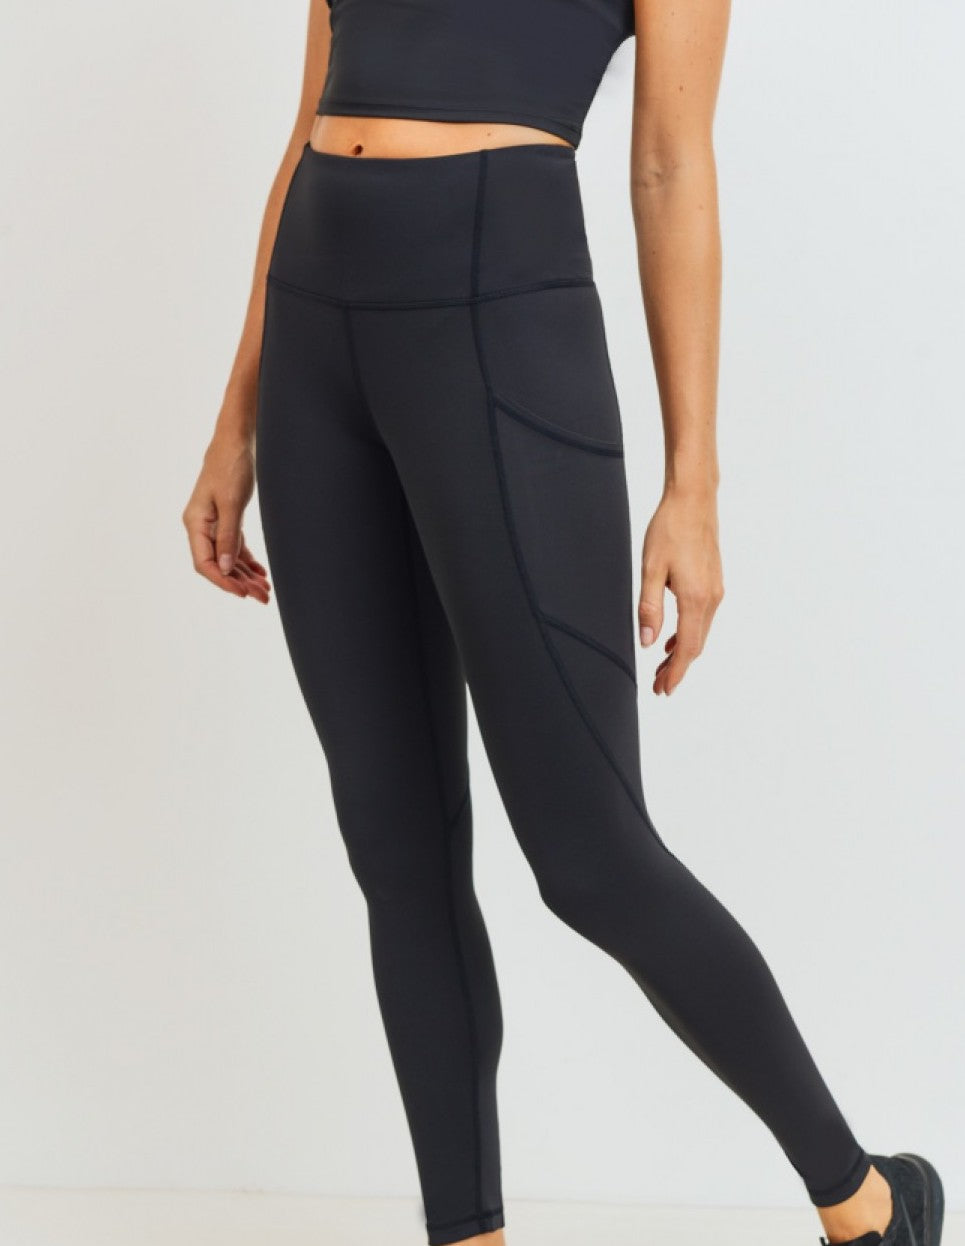 Mar High Waist Leggings